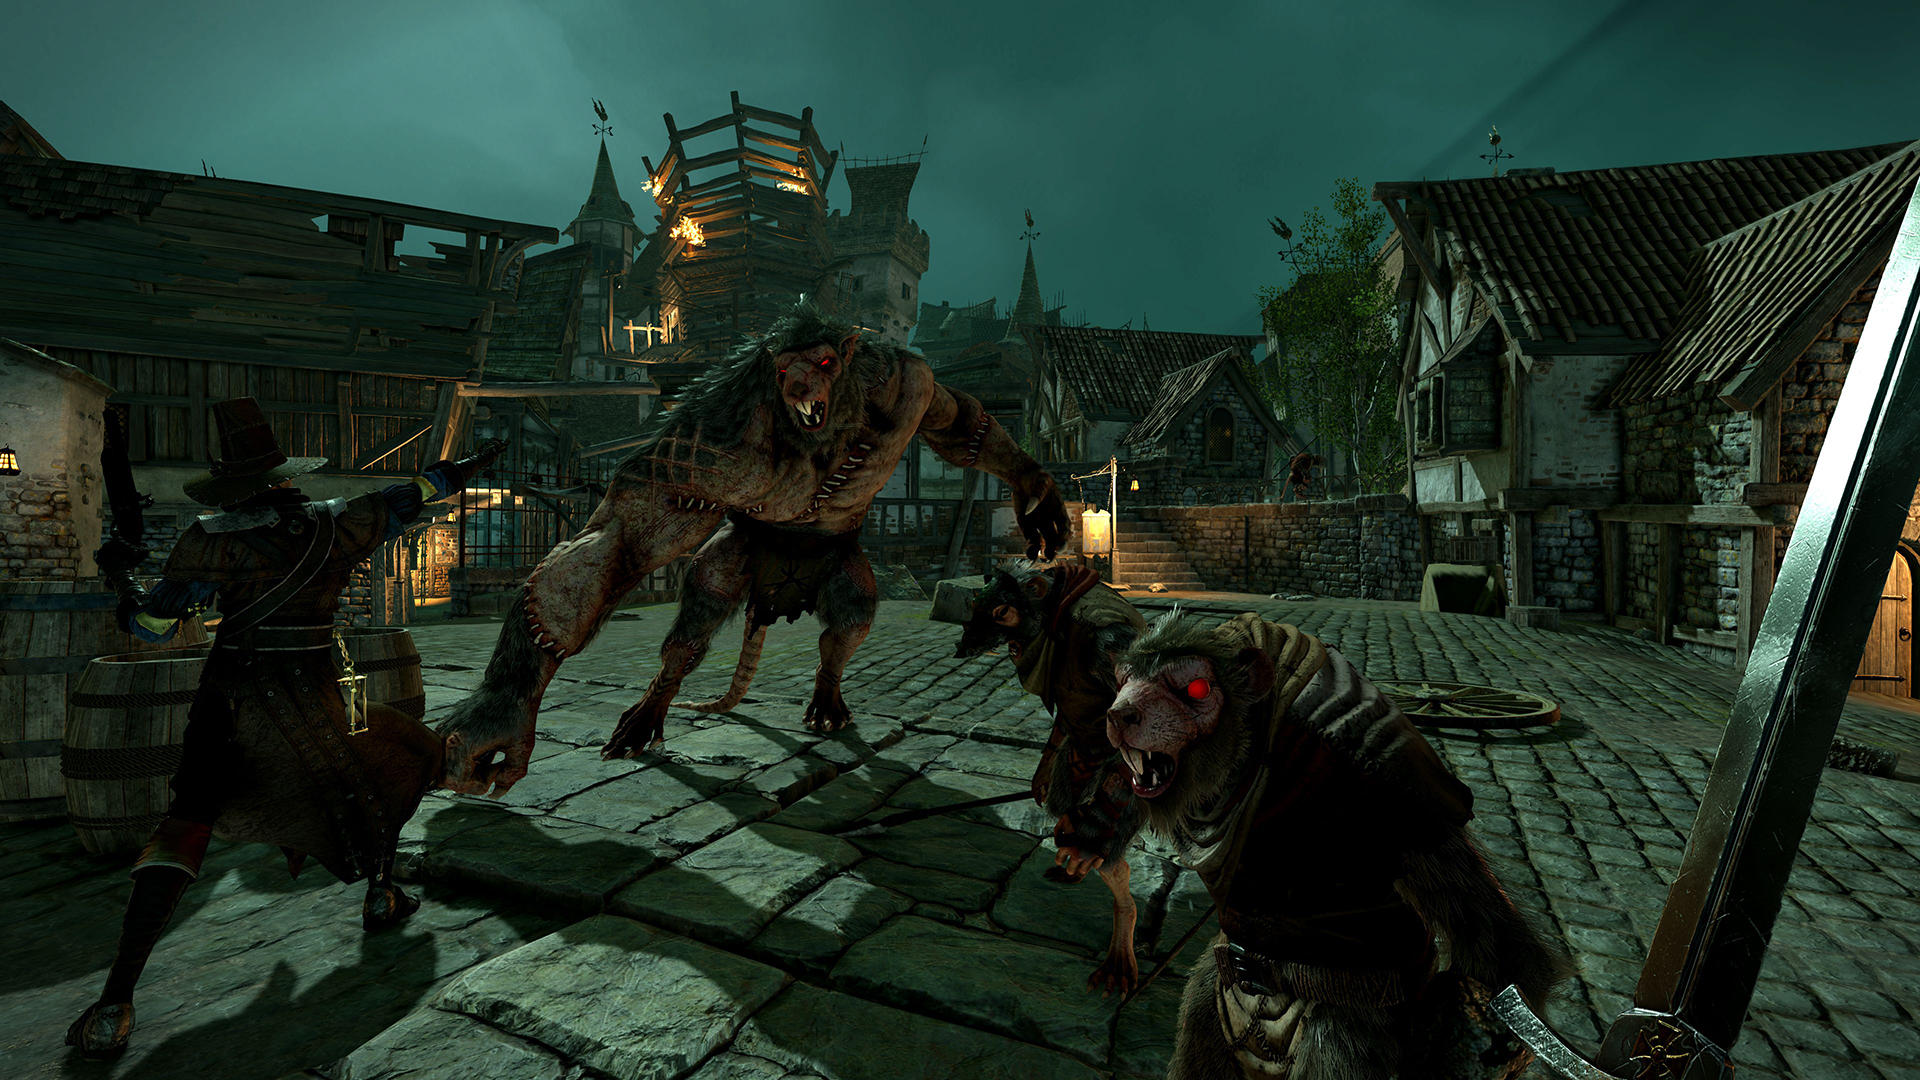 Warhammer: End Times - Vermintide (PC/Xbone/PS4)